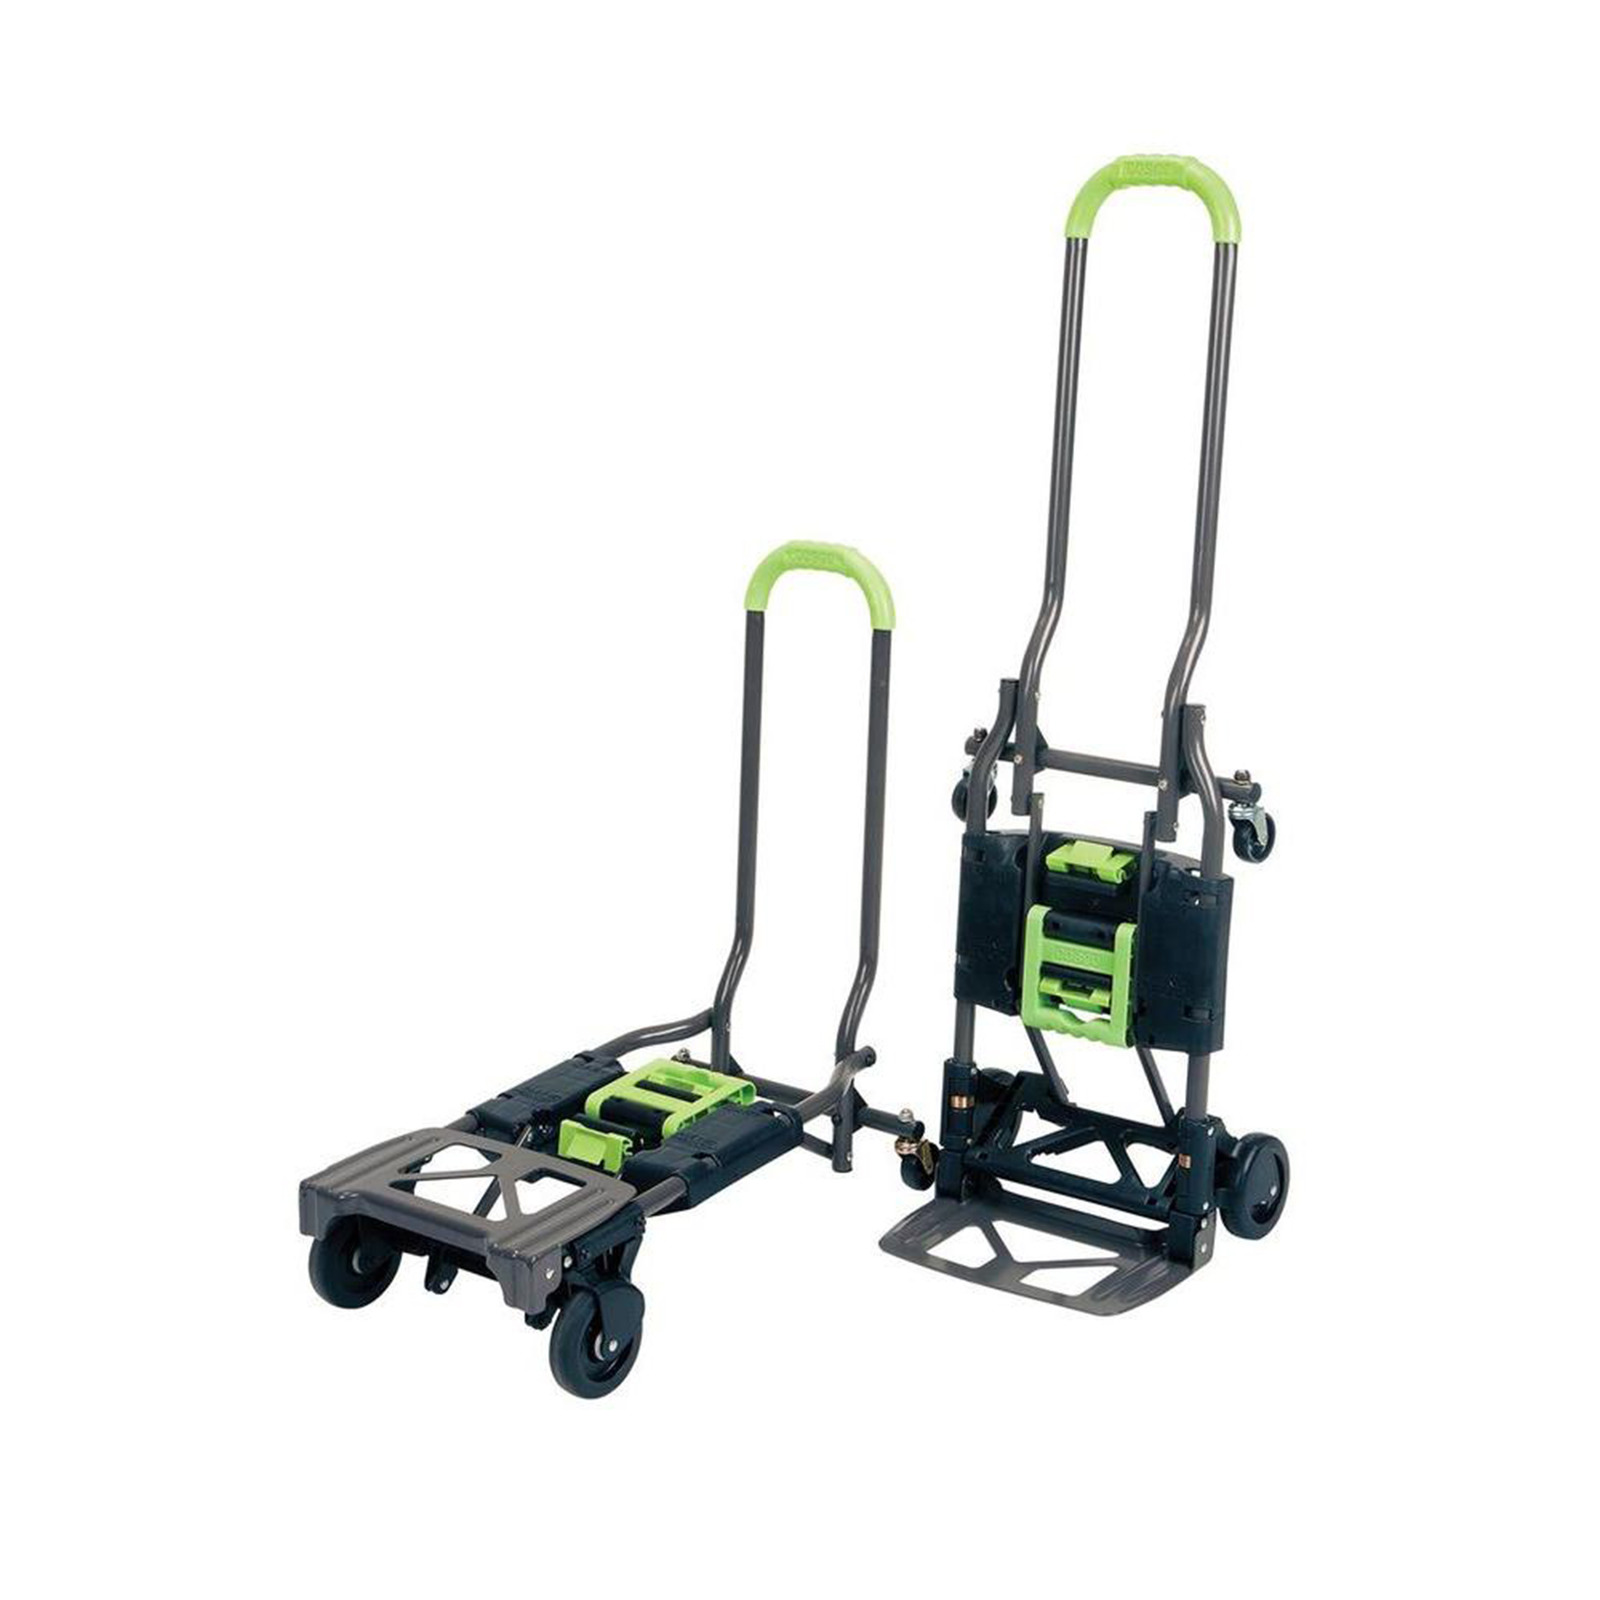 Cosco 2-in-1 Folding Shifter Hand Truck - Cart